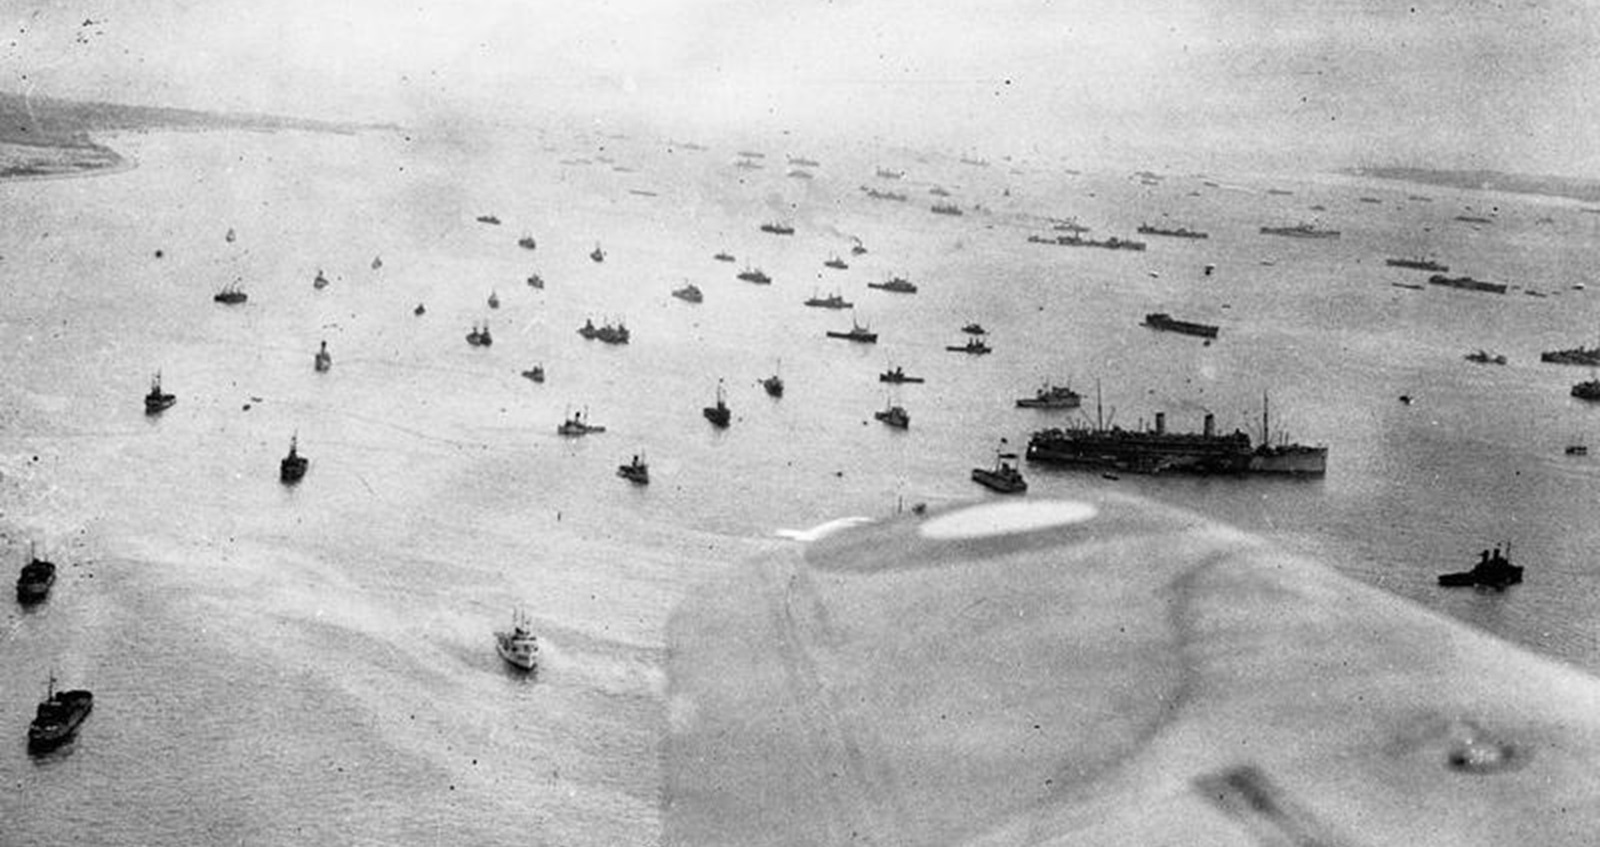 Aerial photograph of ships of the Royal Navy massing off the Isle of Wight before setting off for the Normandy beaches.